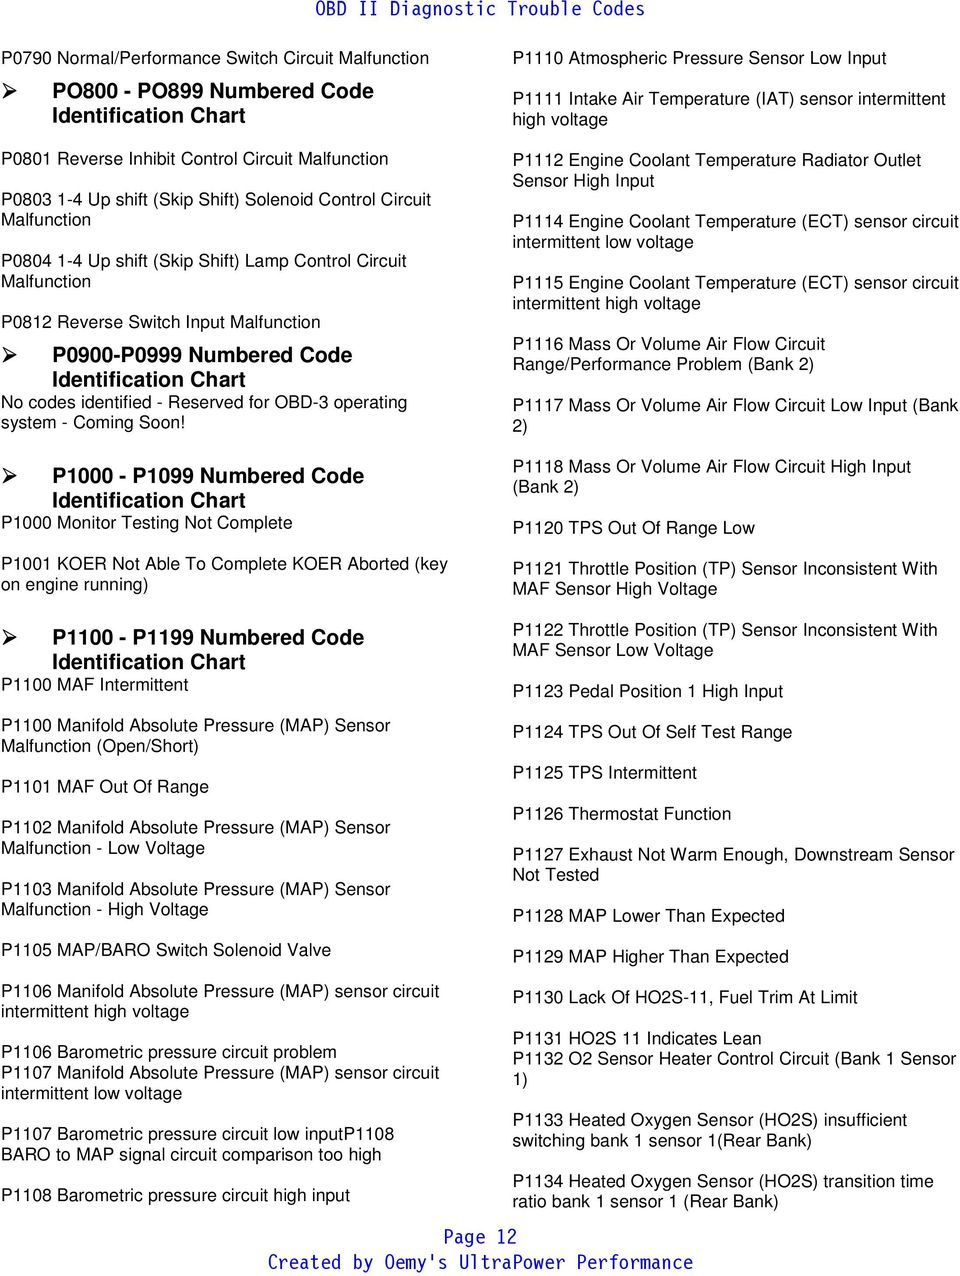 Obd Ii Diagnostic Trouble Codes Table Of Contents Pdf Map Sensor Schematic P1000 P1099 Numbered Code Monitor Testing Not Complete P1001 Koer Able To